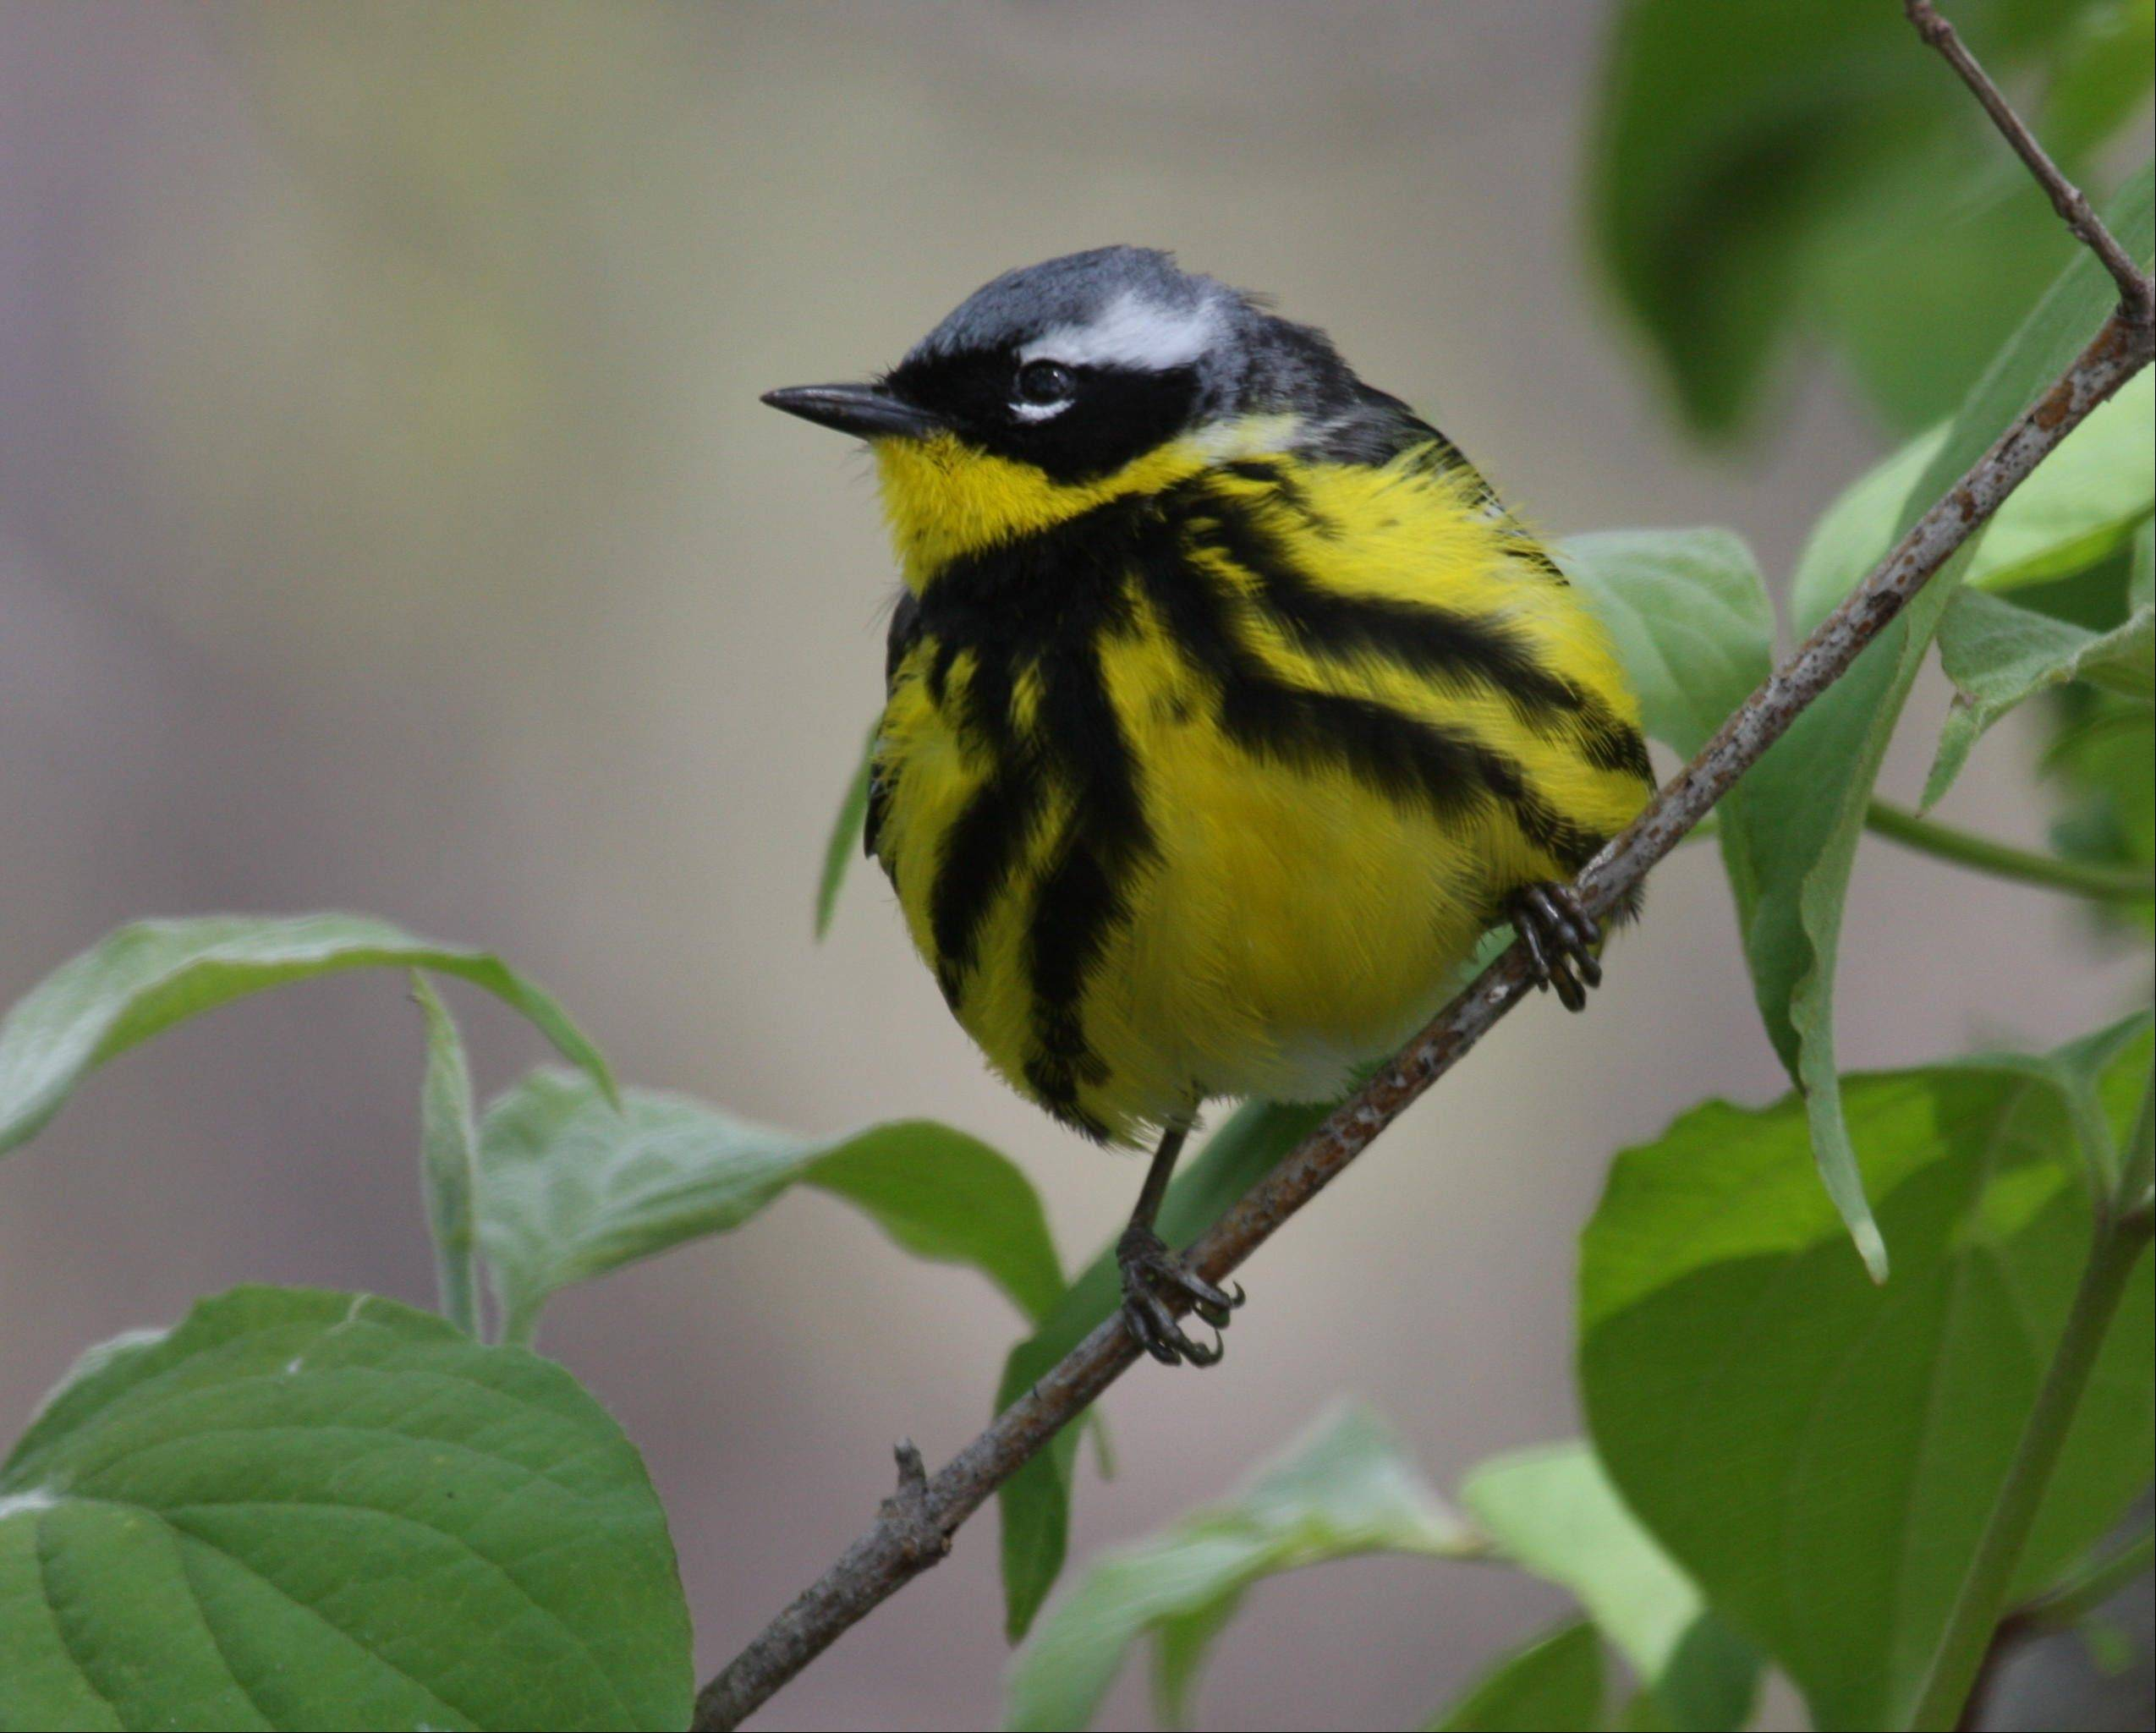 Colorful migrants, like this magnolia warbler, are ticketed for early arrival this spring.